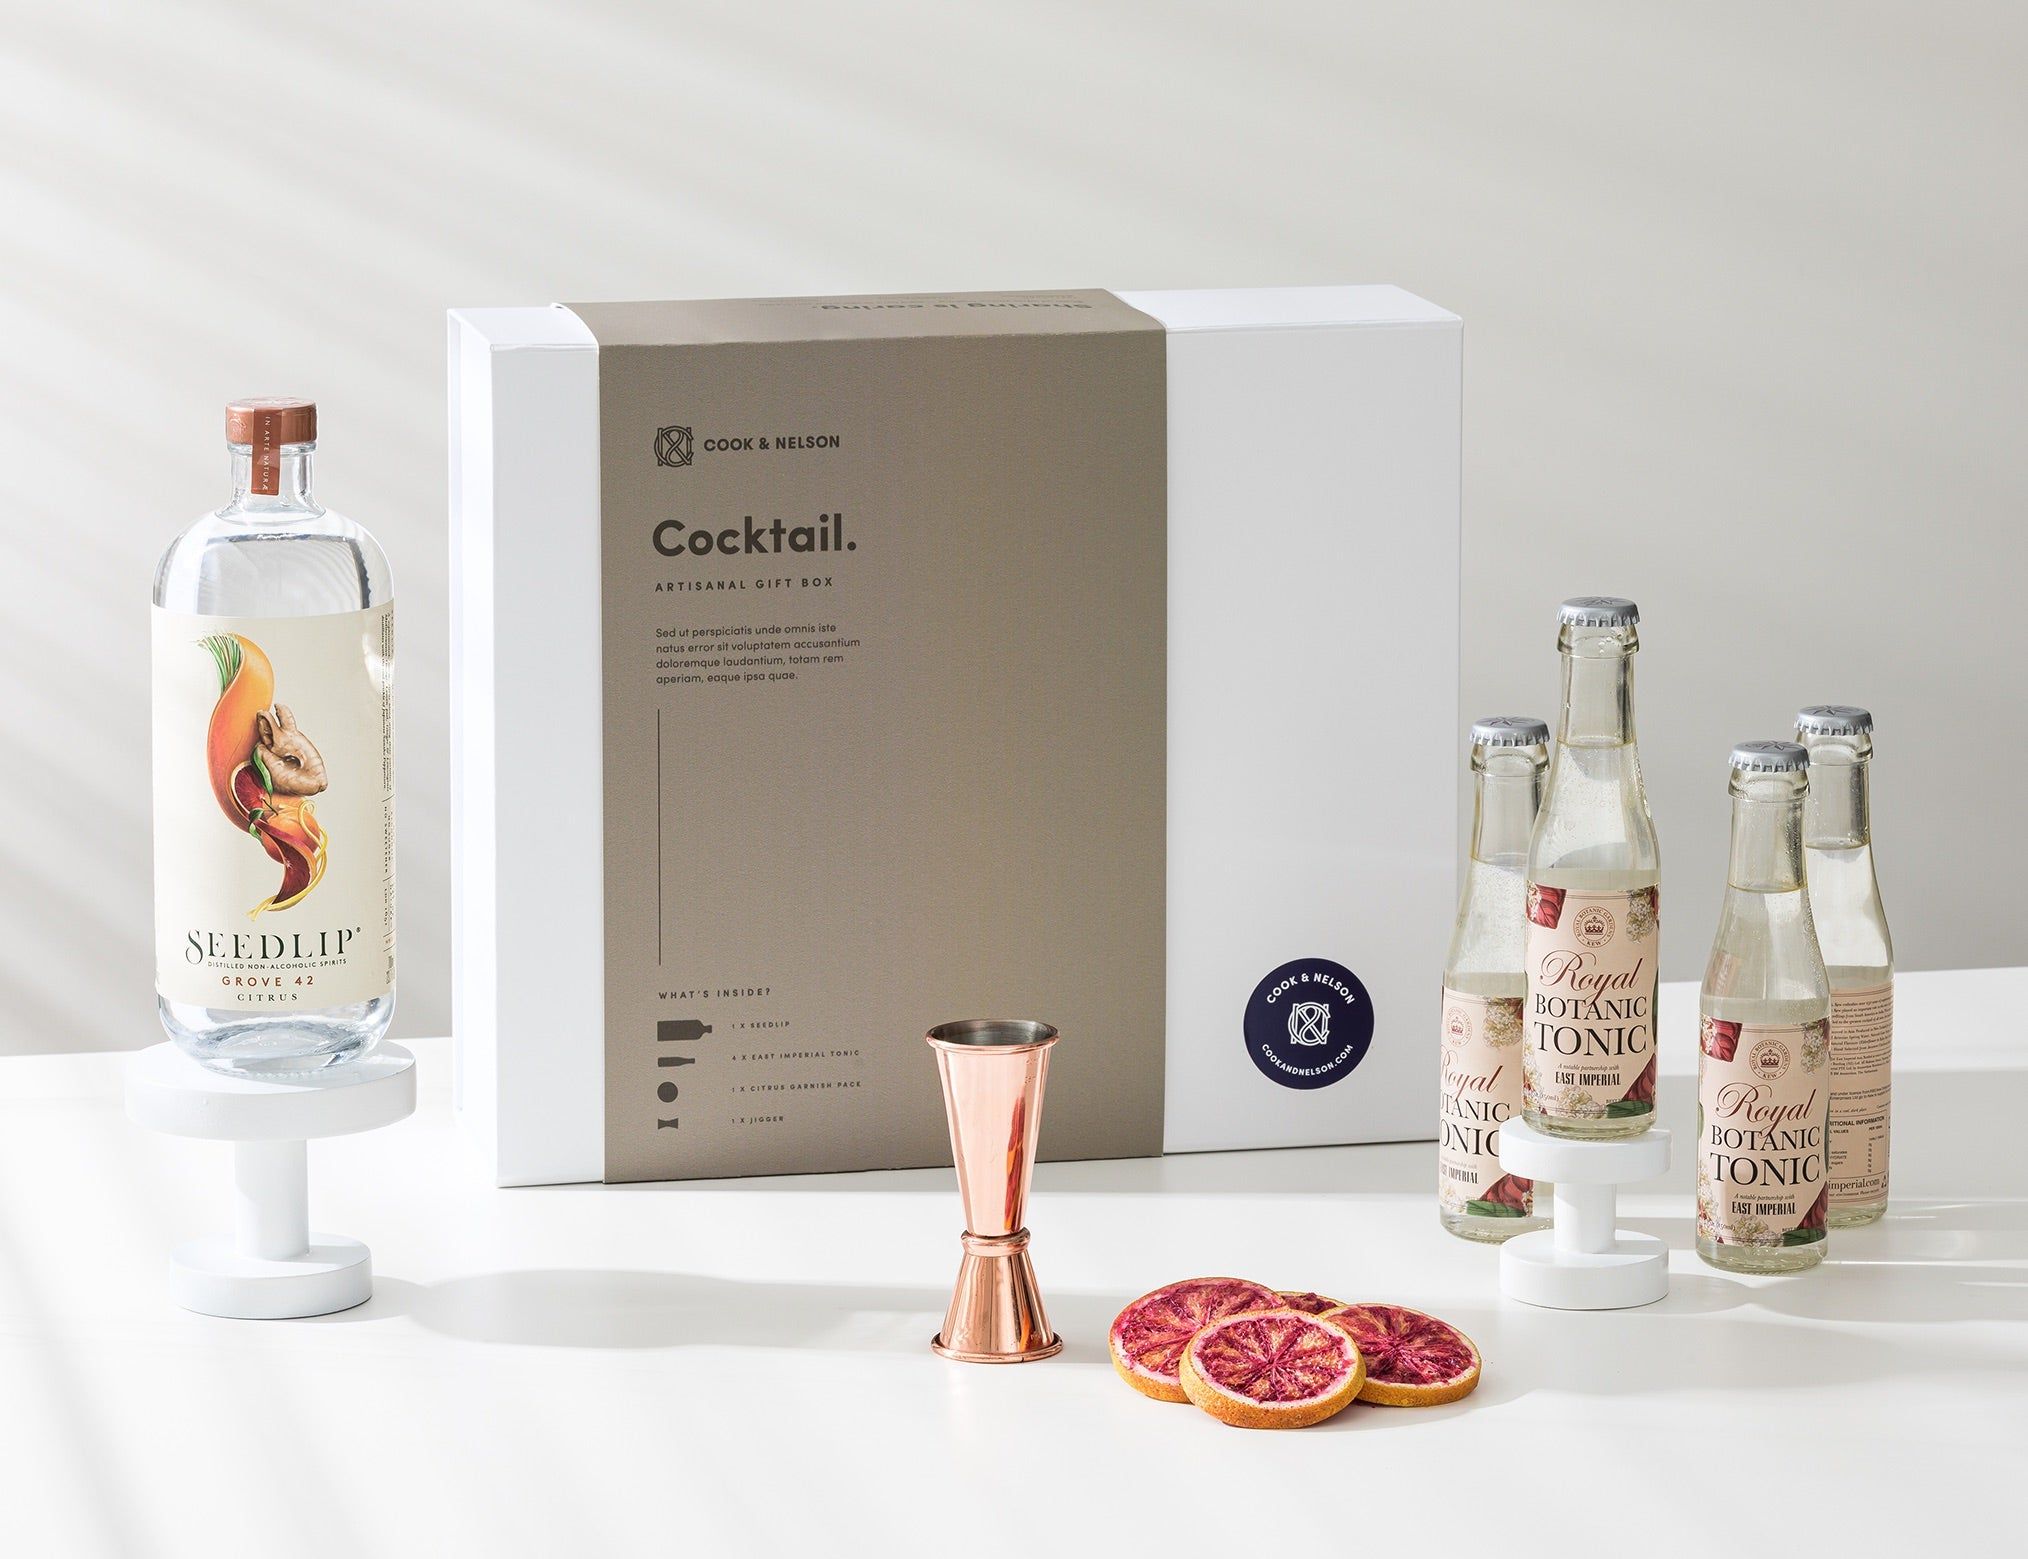 Cocktail Artisanal Gift Box